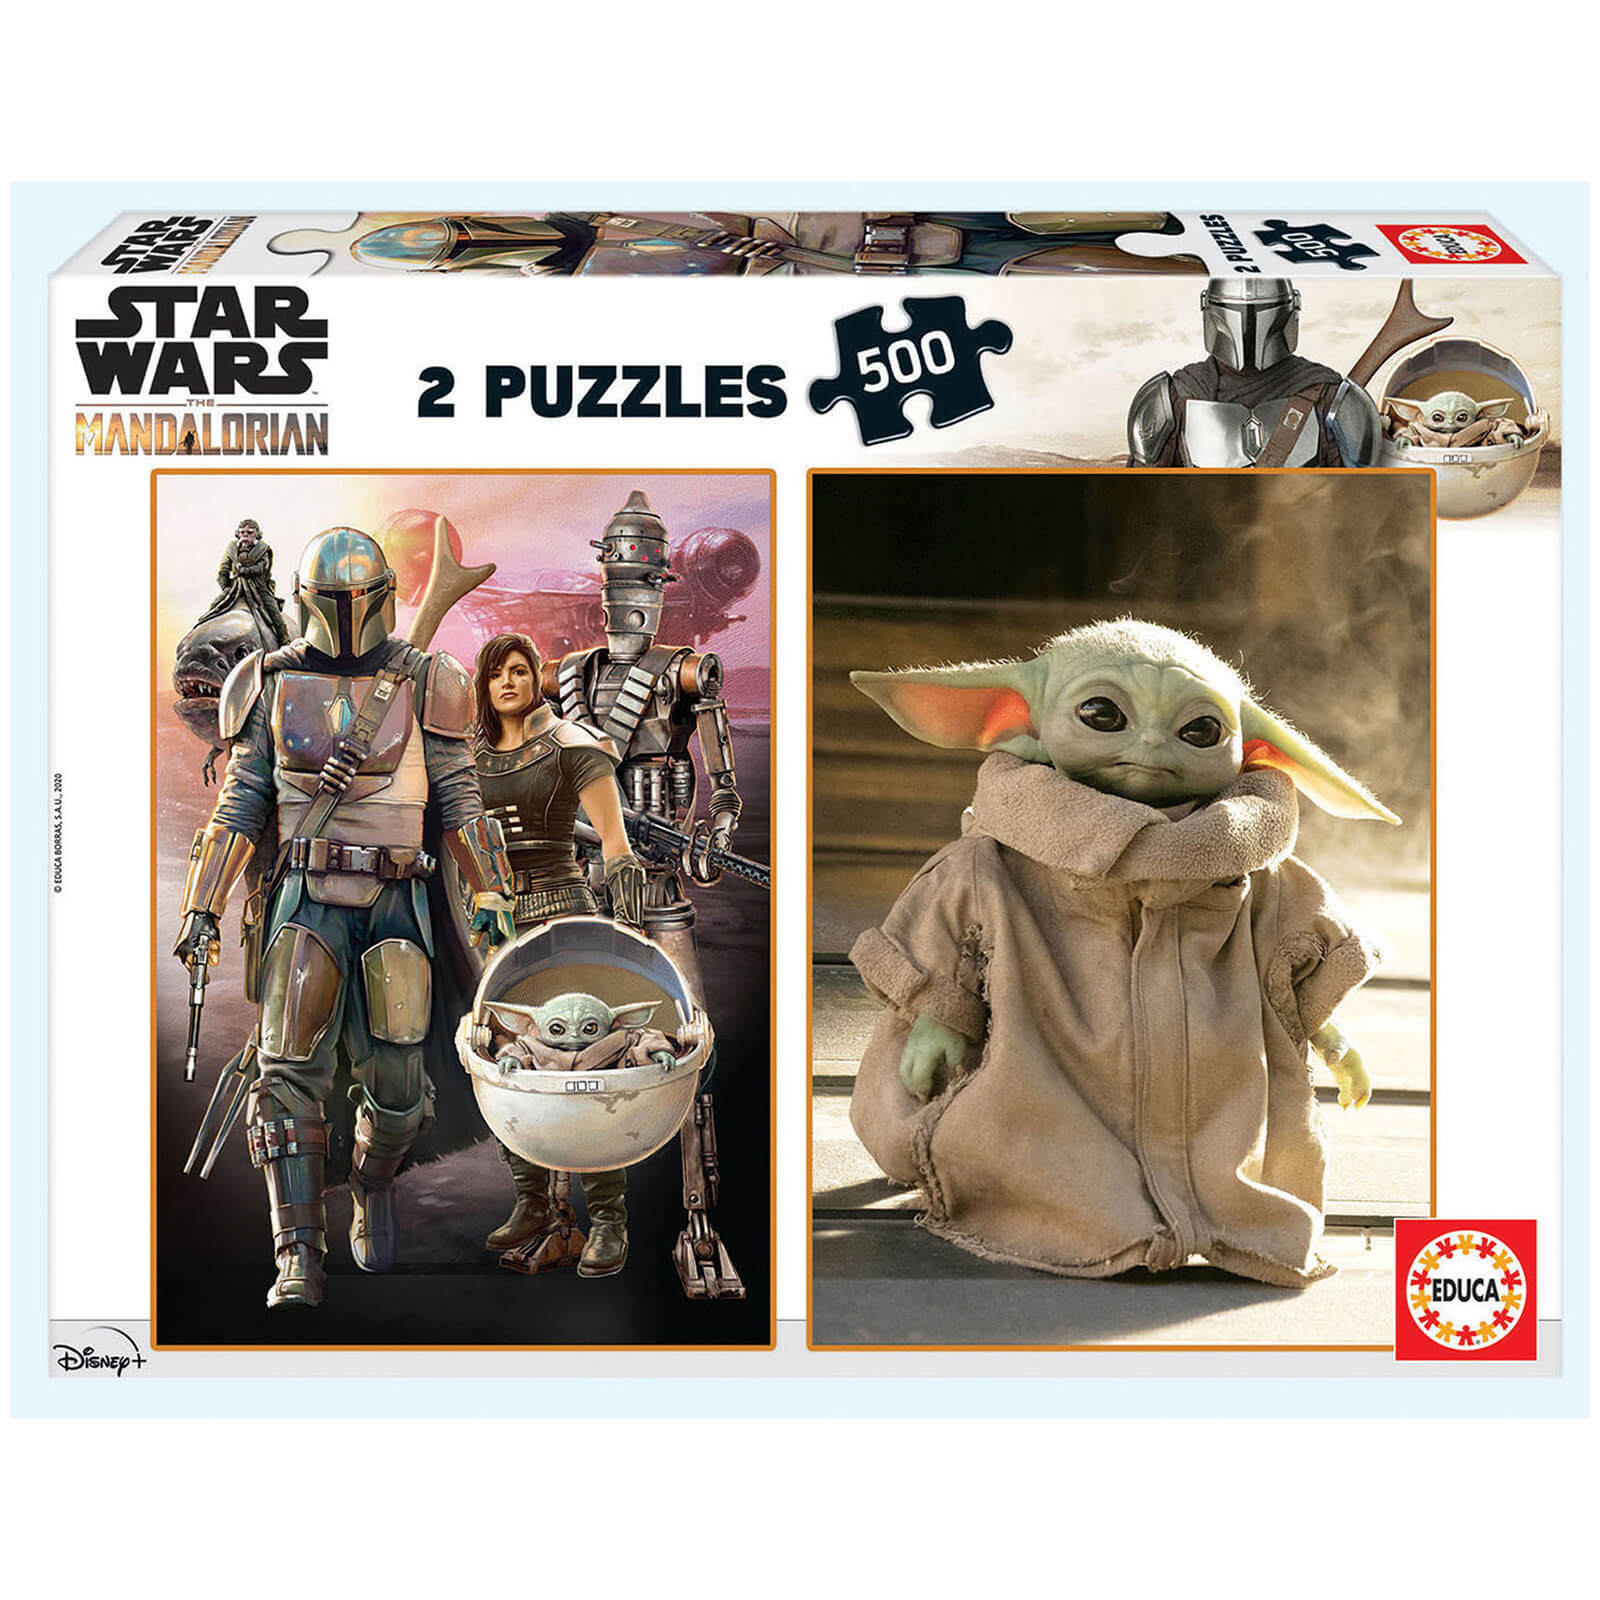 Image of Mandalorian 2-in-1 Jigsaw Puzzles (500 Pieces)